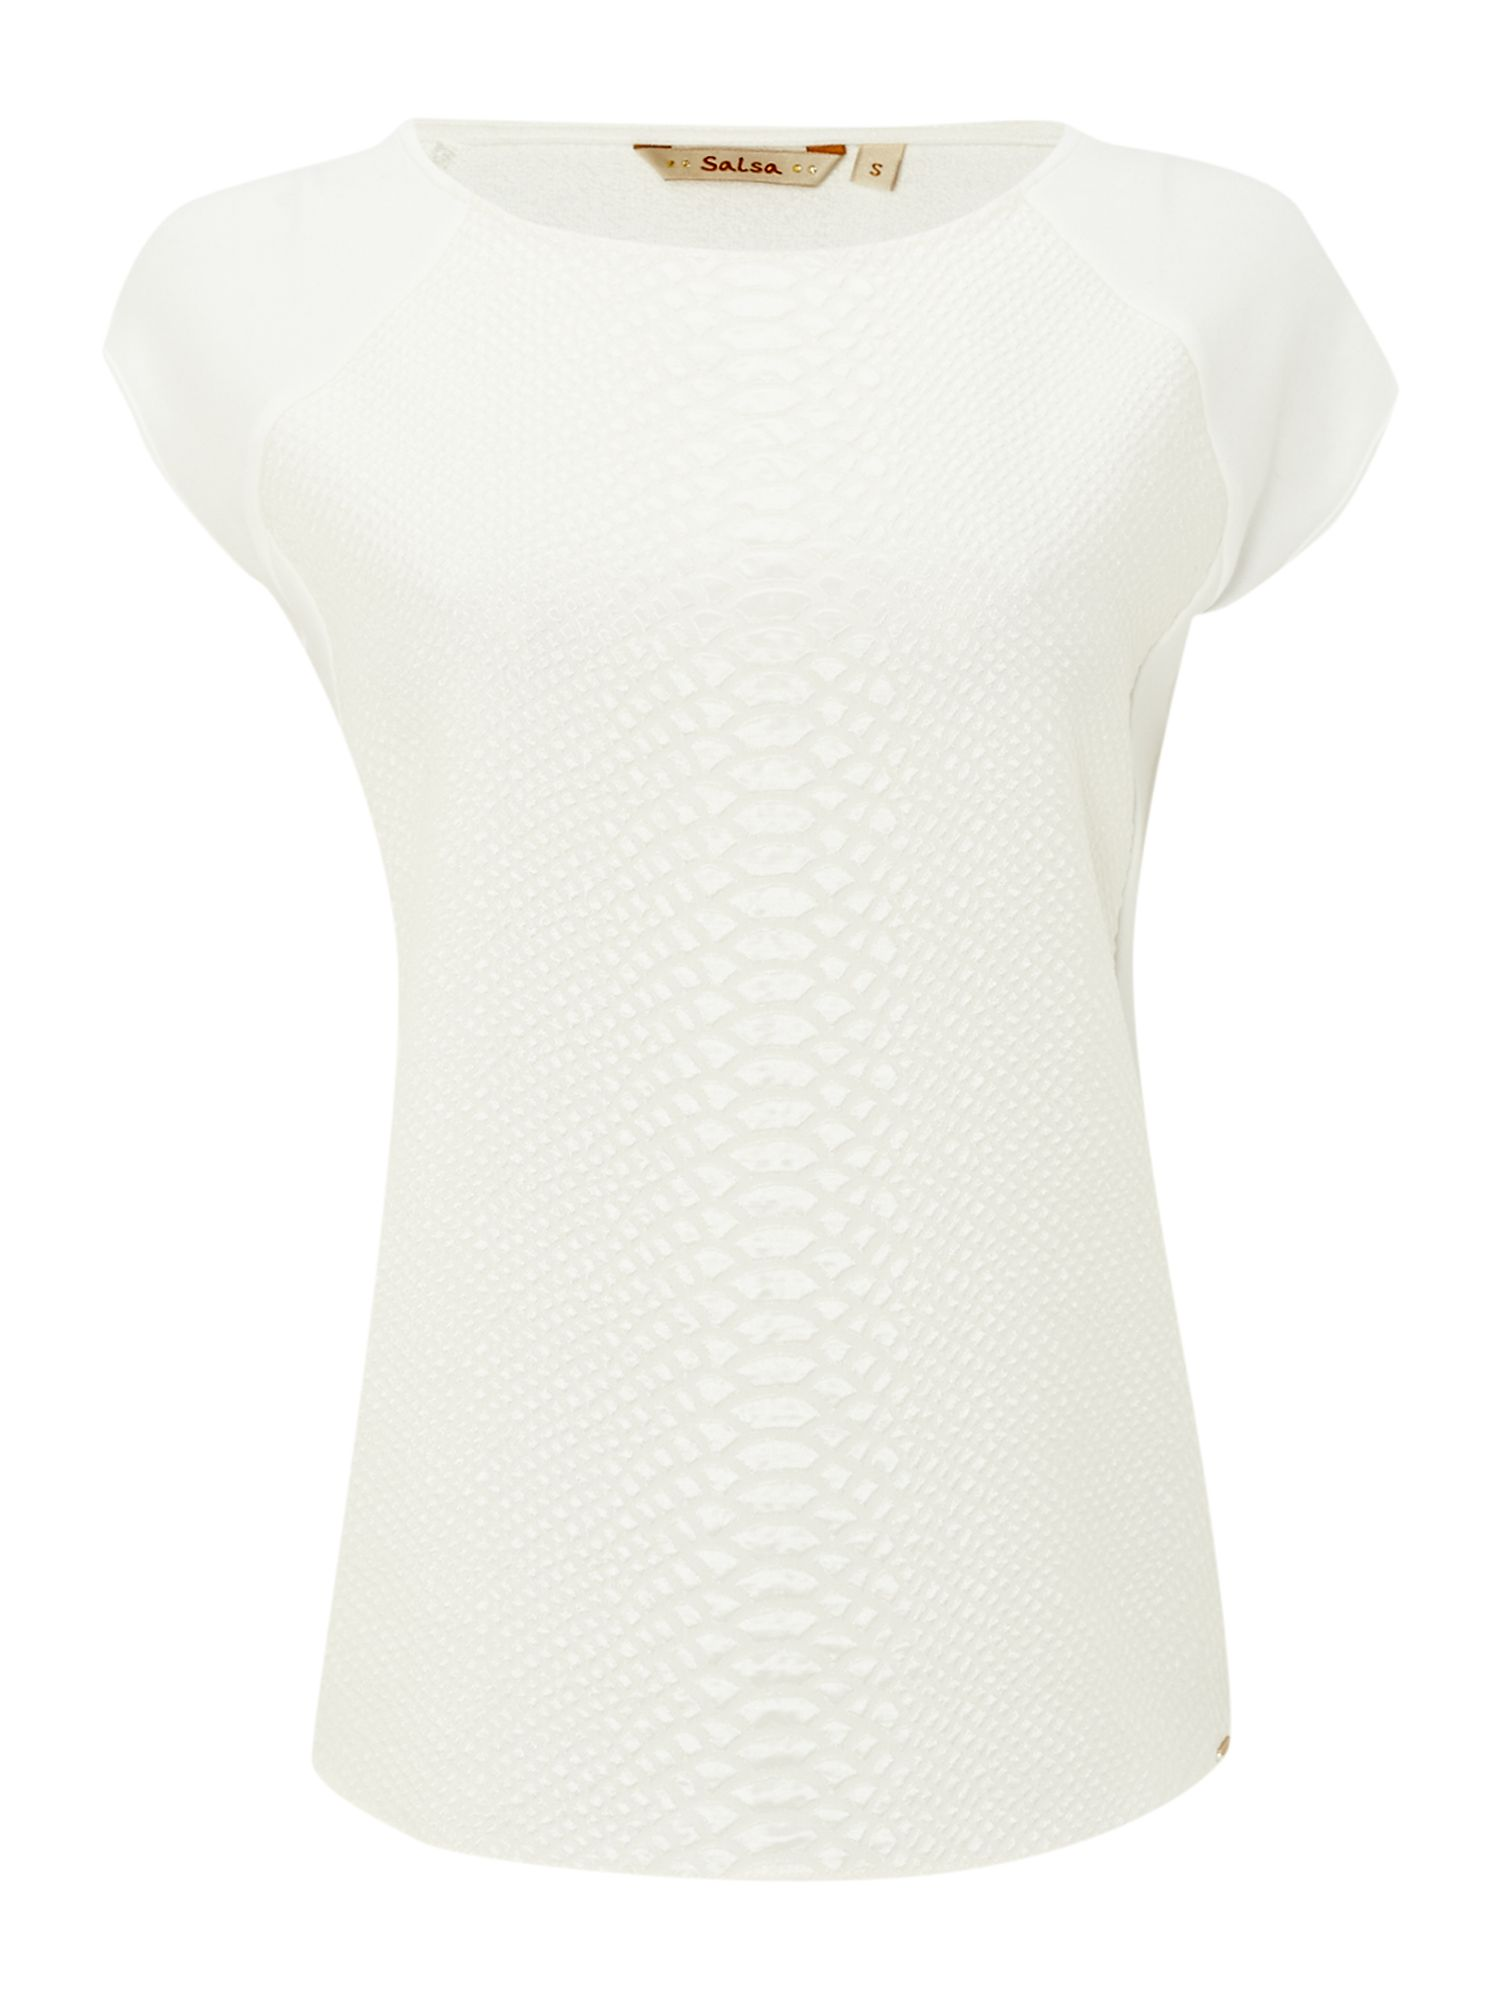 Short sleeve croc textured top